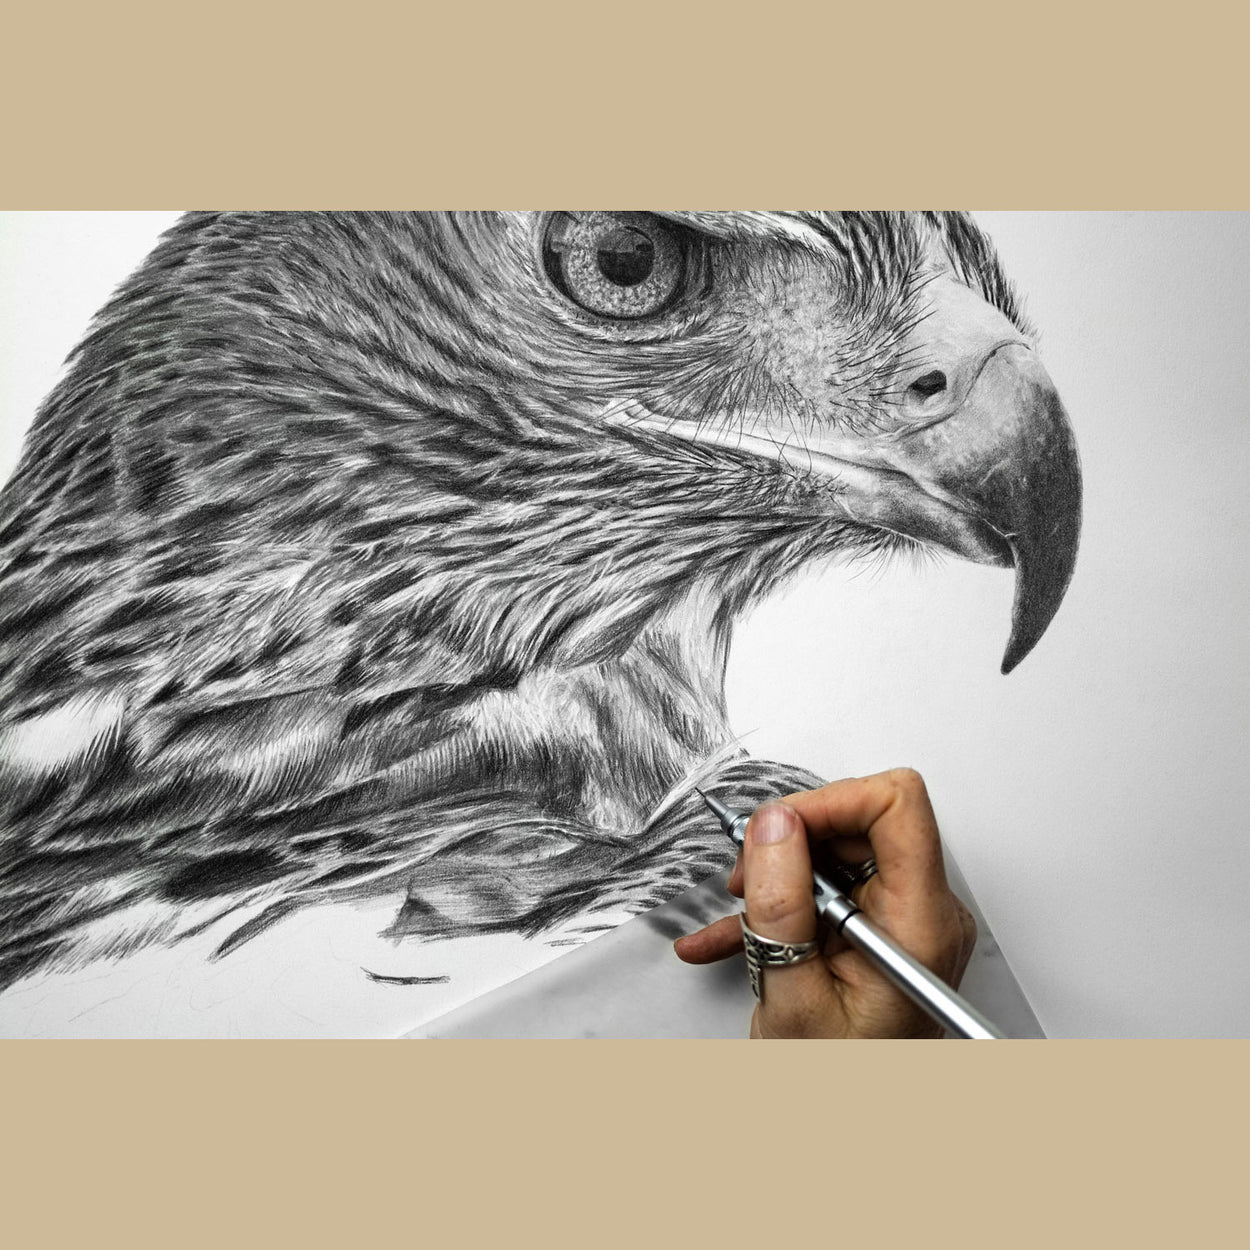 Golden Eagle Drawing in Progress - The Thriving Wild